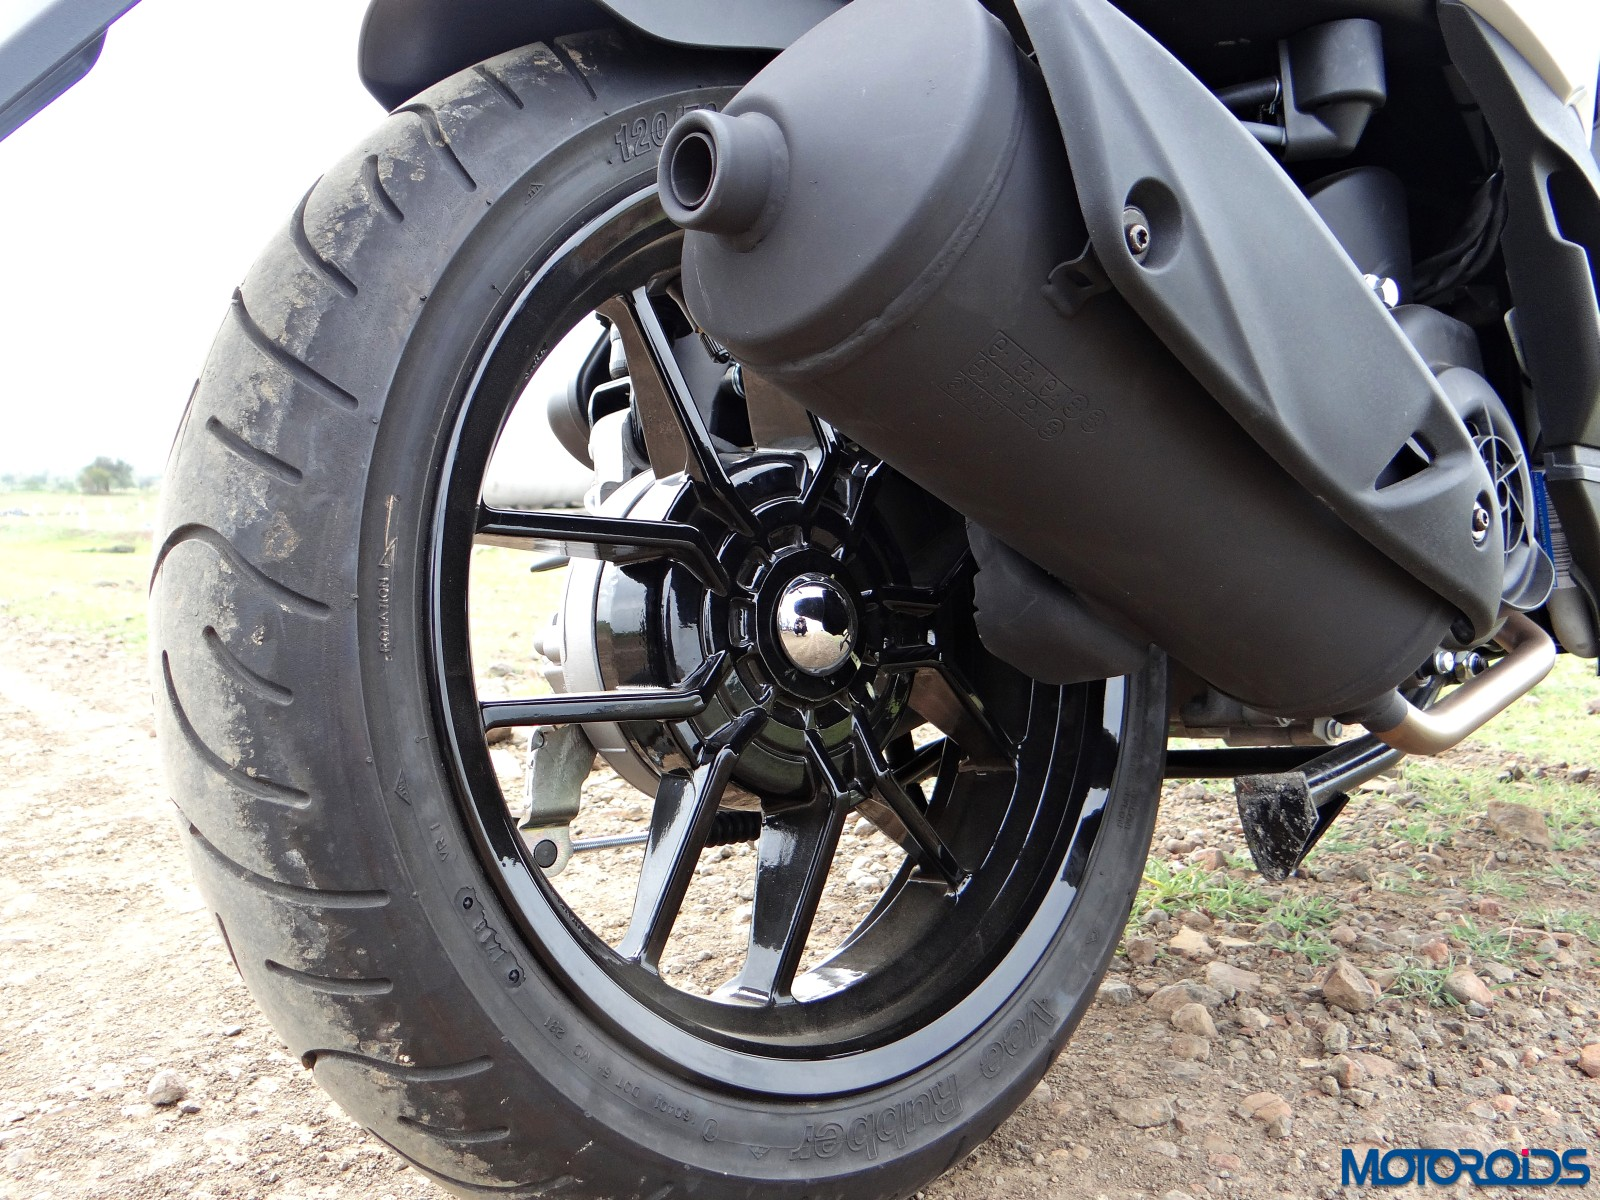 Aprilia SR 150 Review - Details - Wheels (5)